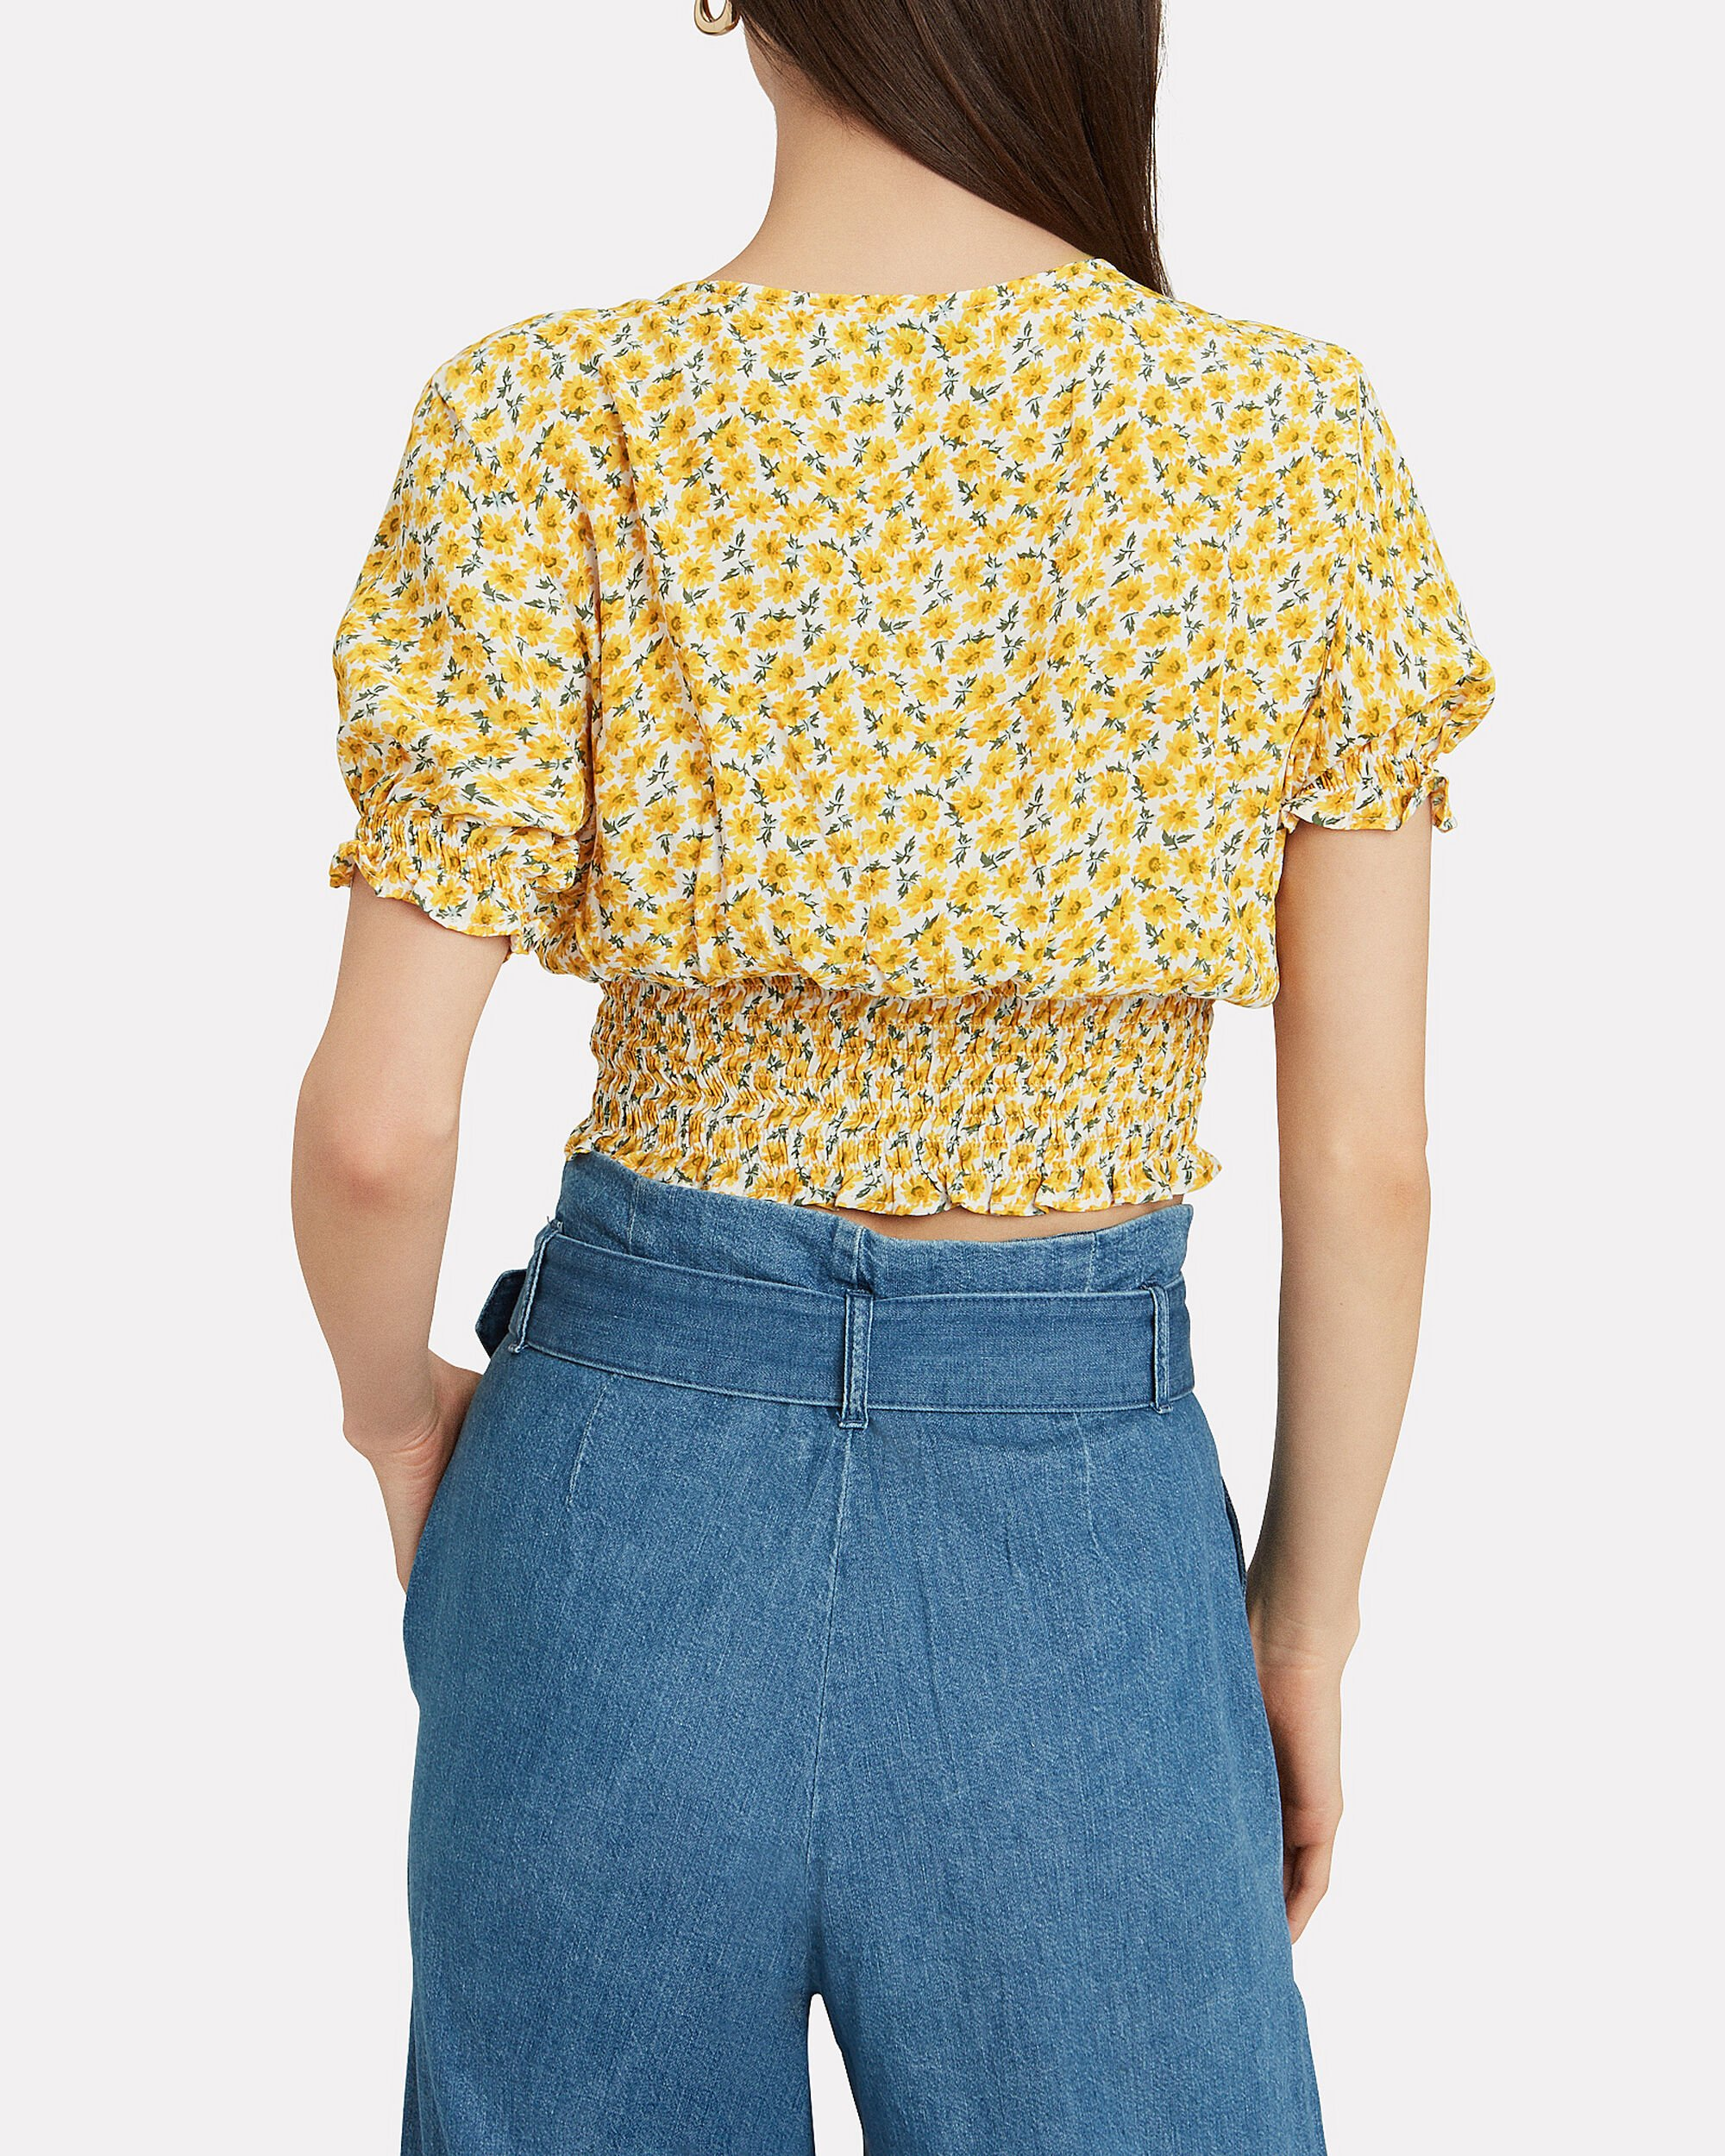 First Light Top, YELLOW/FLORAL, hi-res